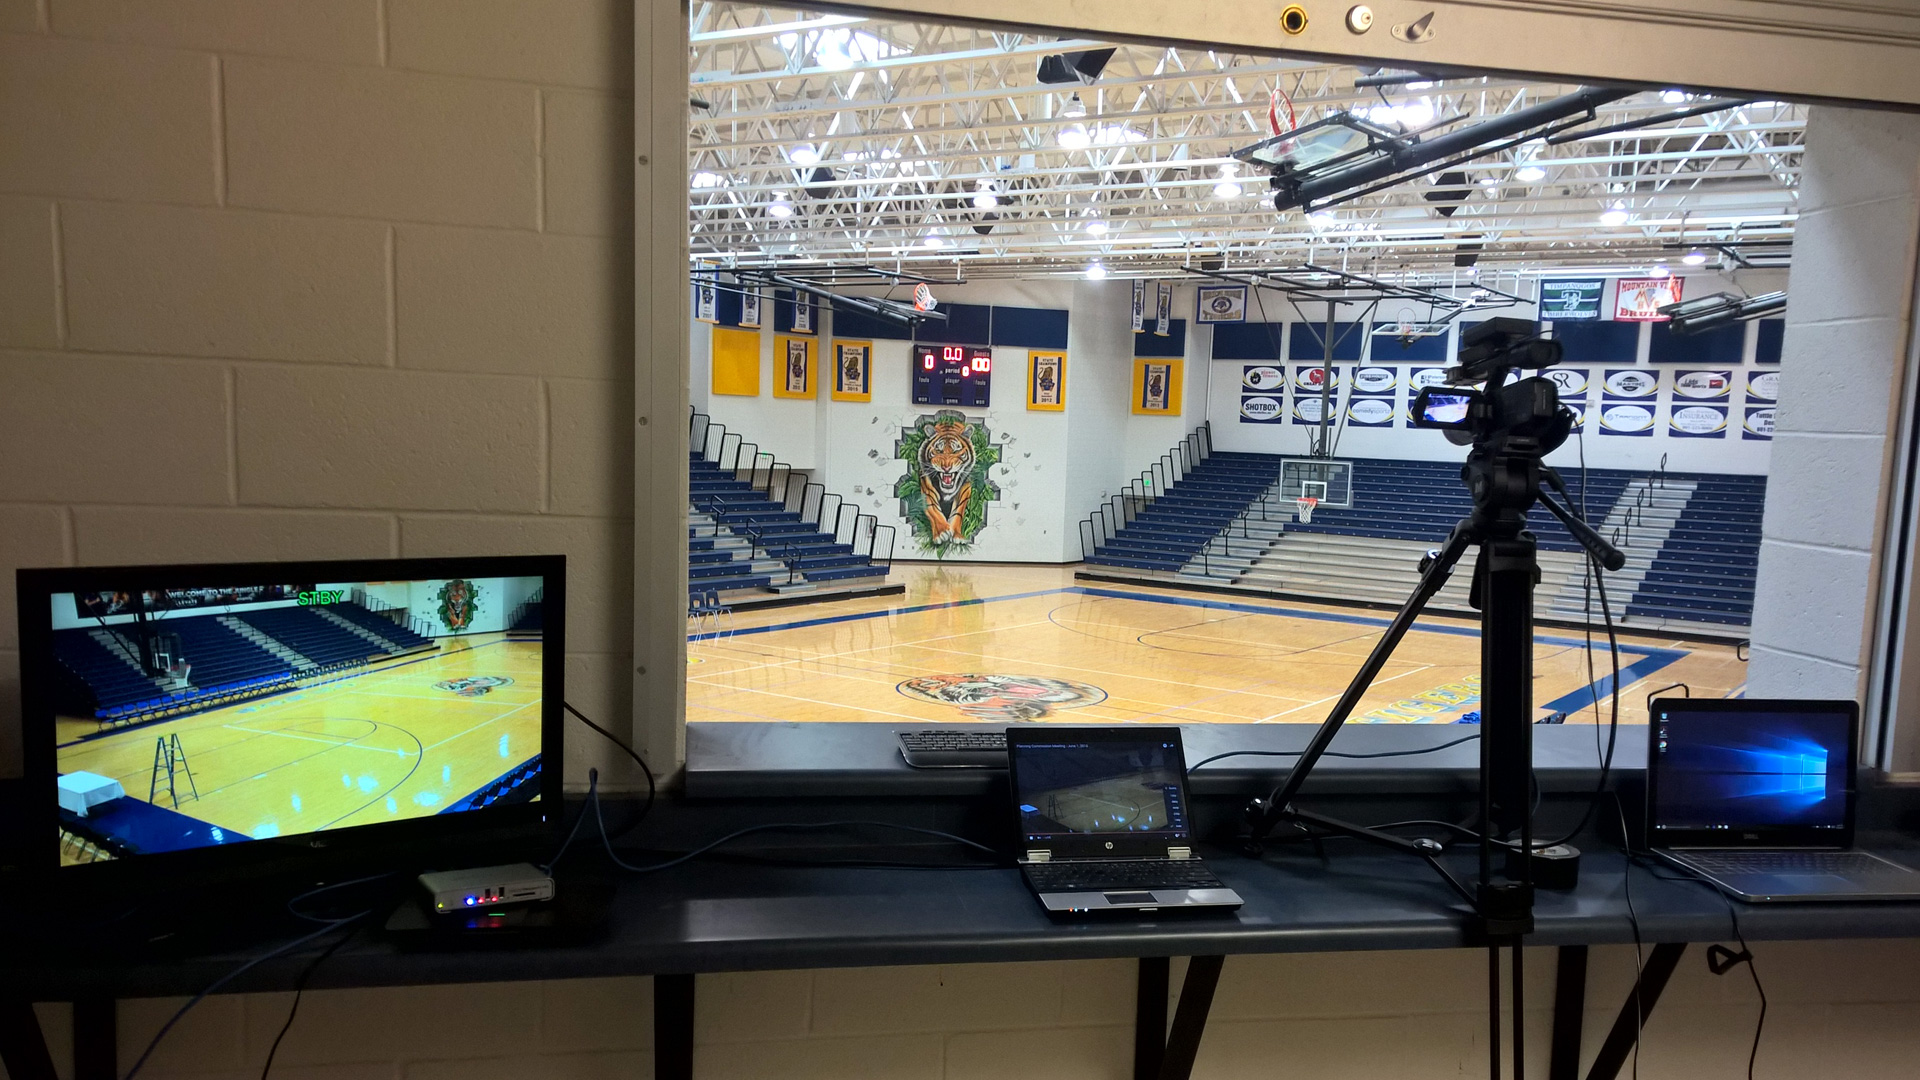 City held charity event at local high school streamed using Matrox Monarch HD streaming and recording appliance.